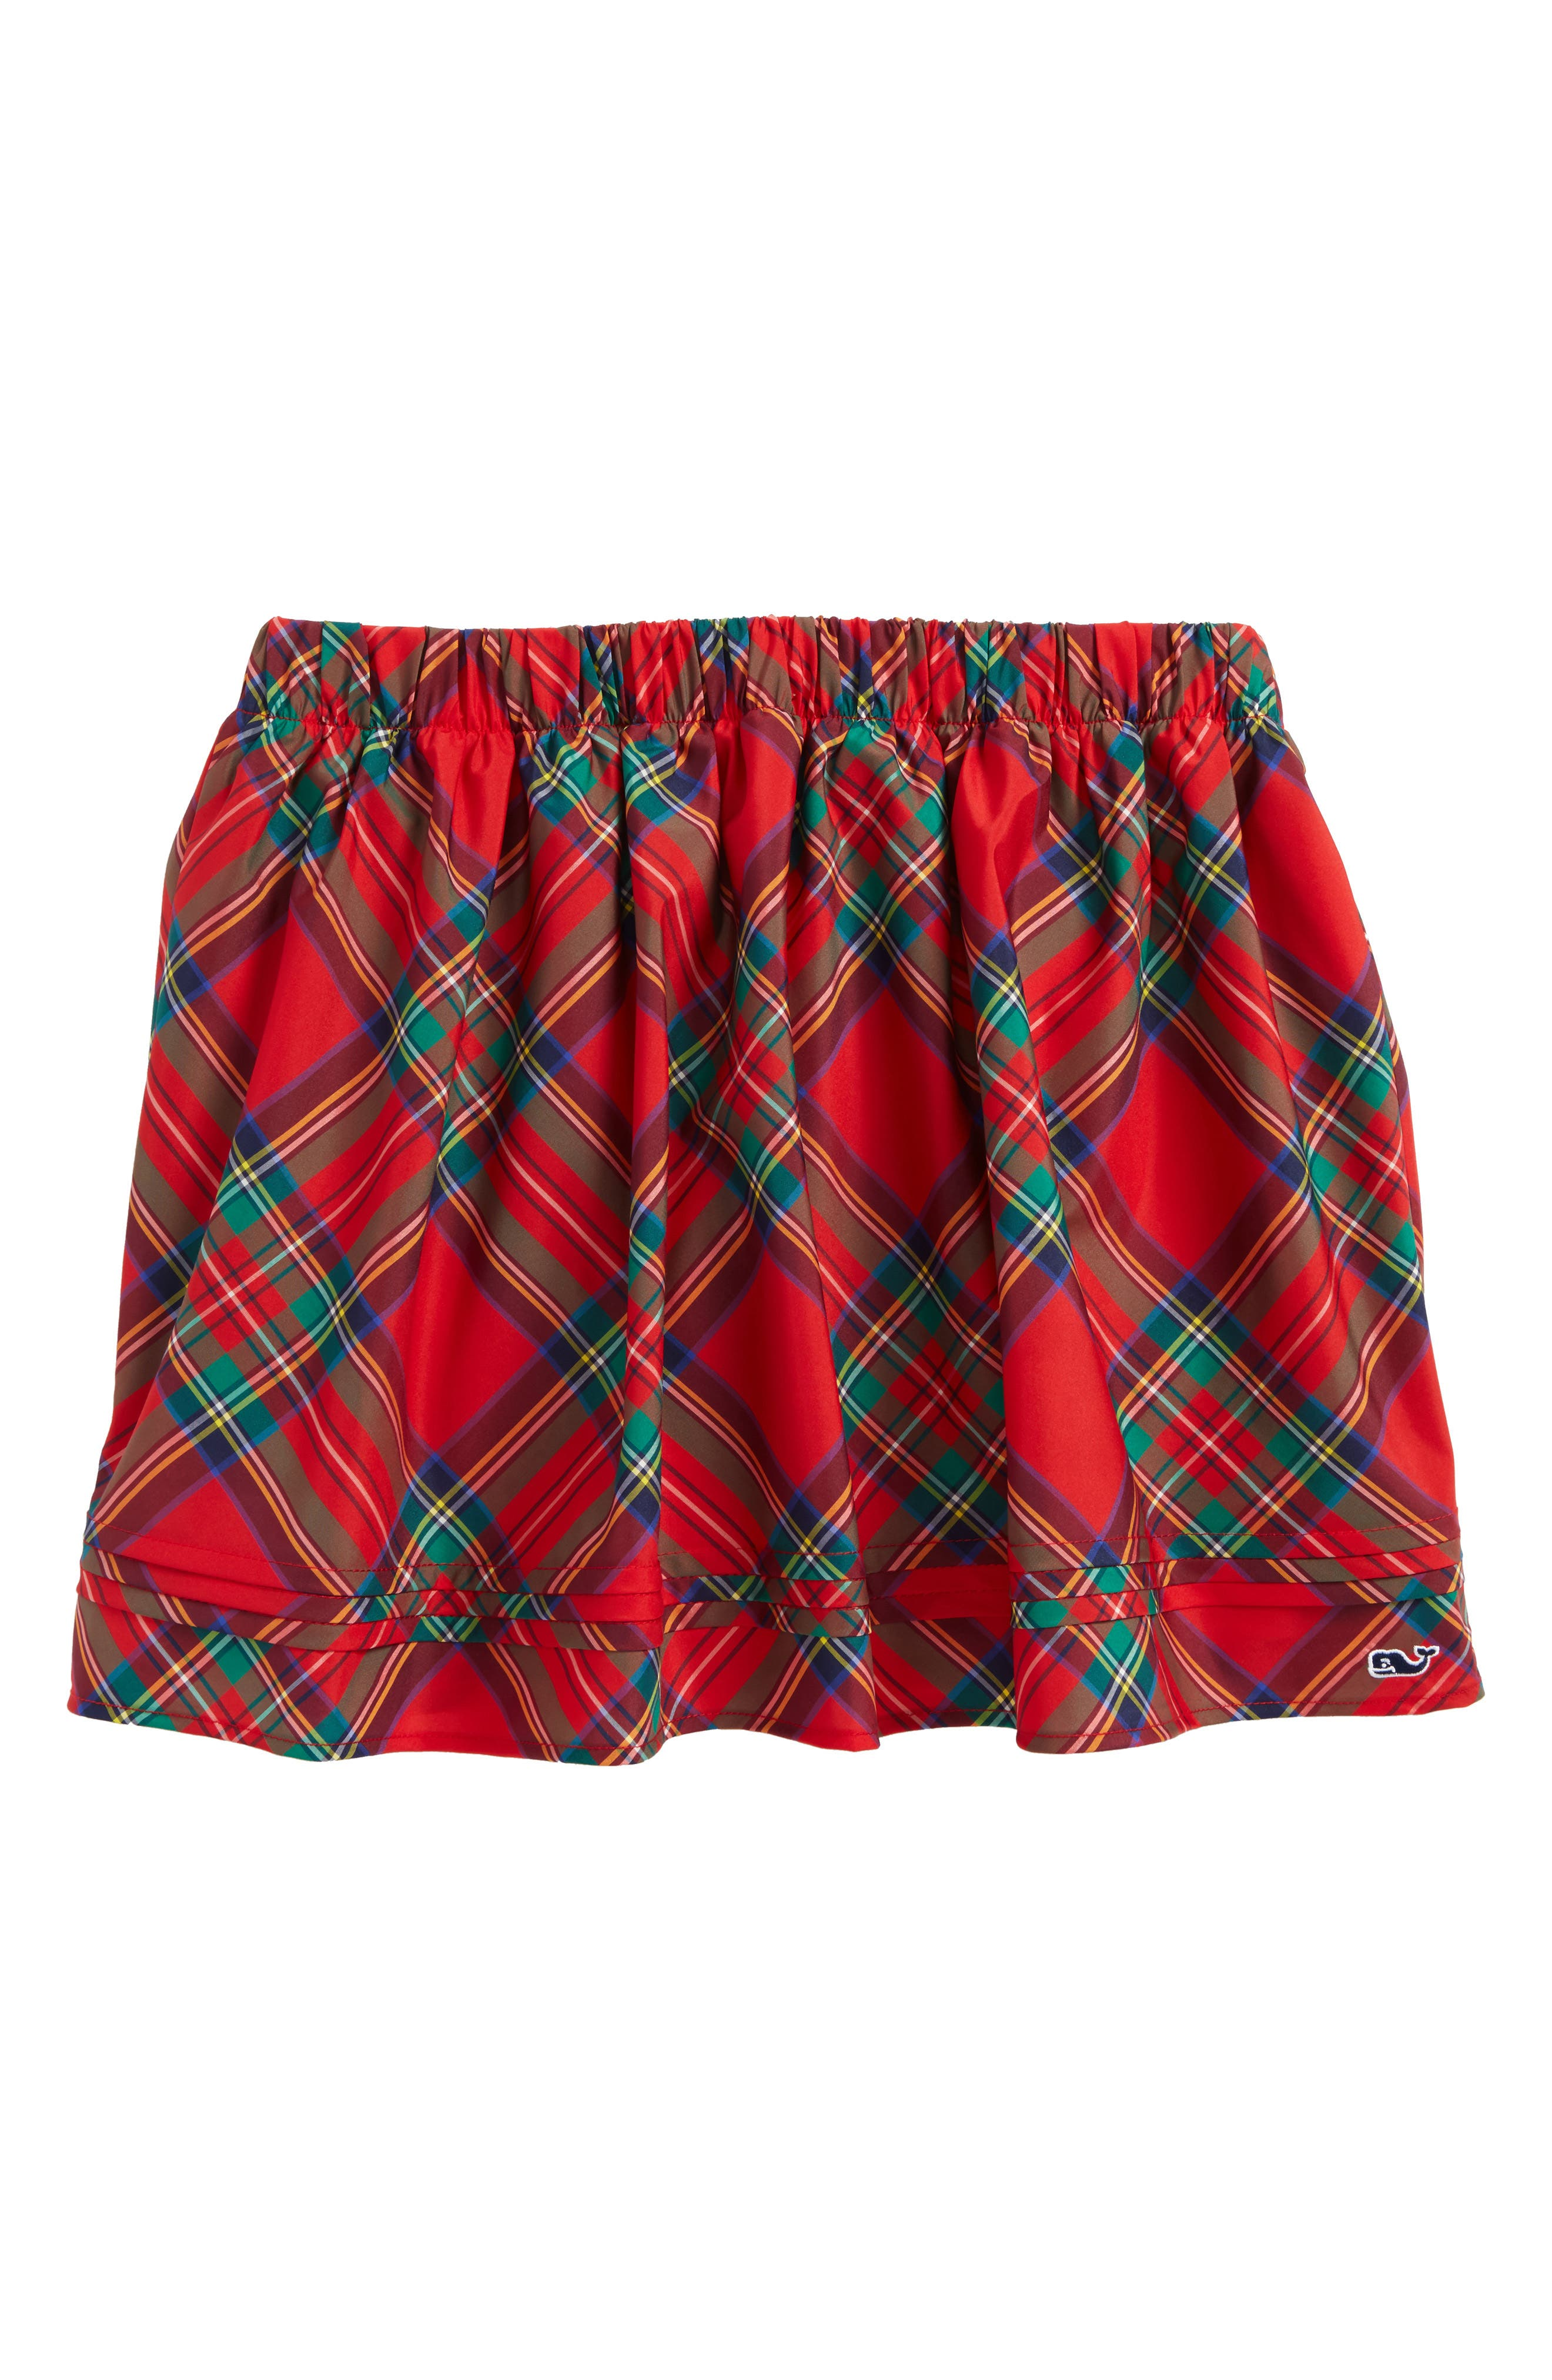 Jolly Plaid Party Skirt,                         Main,                         color, Lighthouse Red